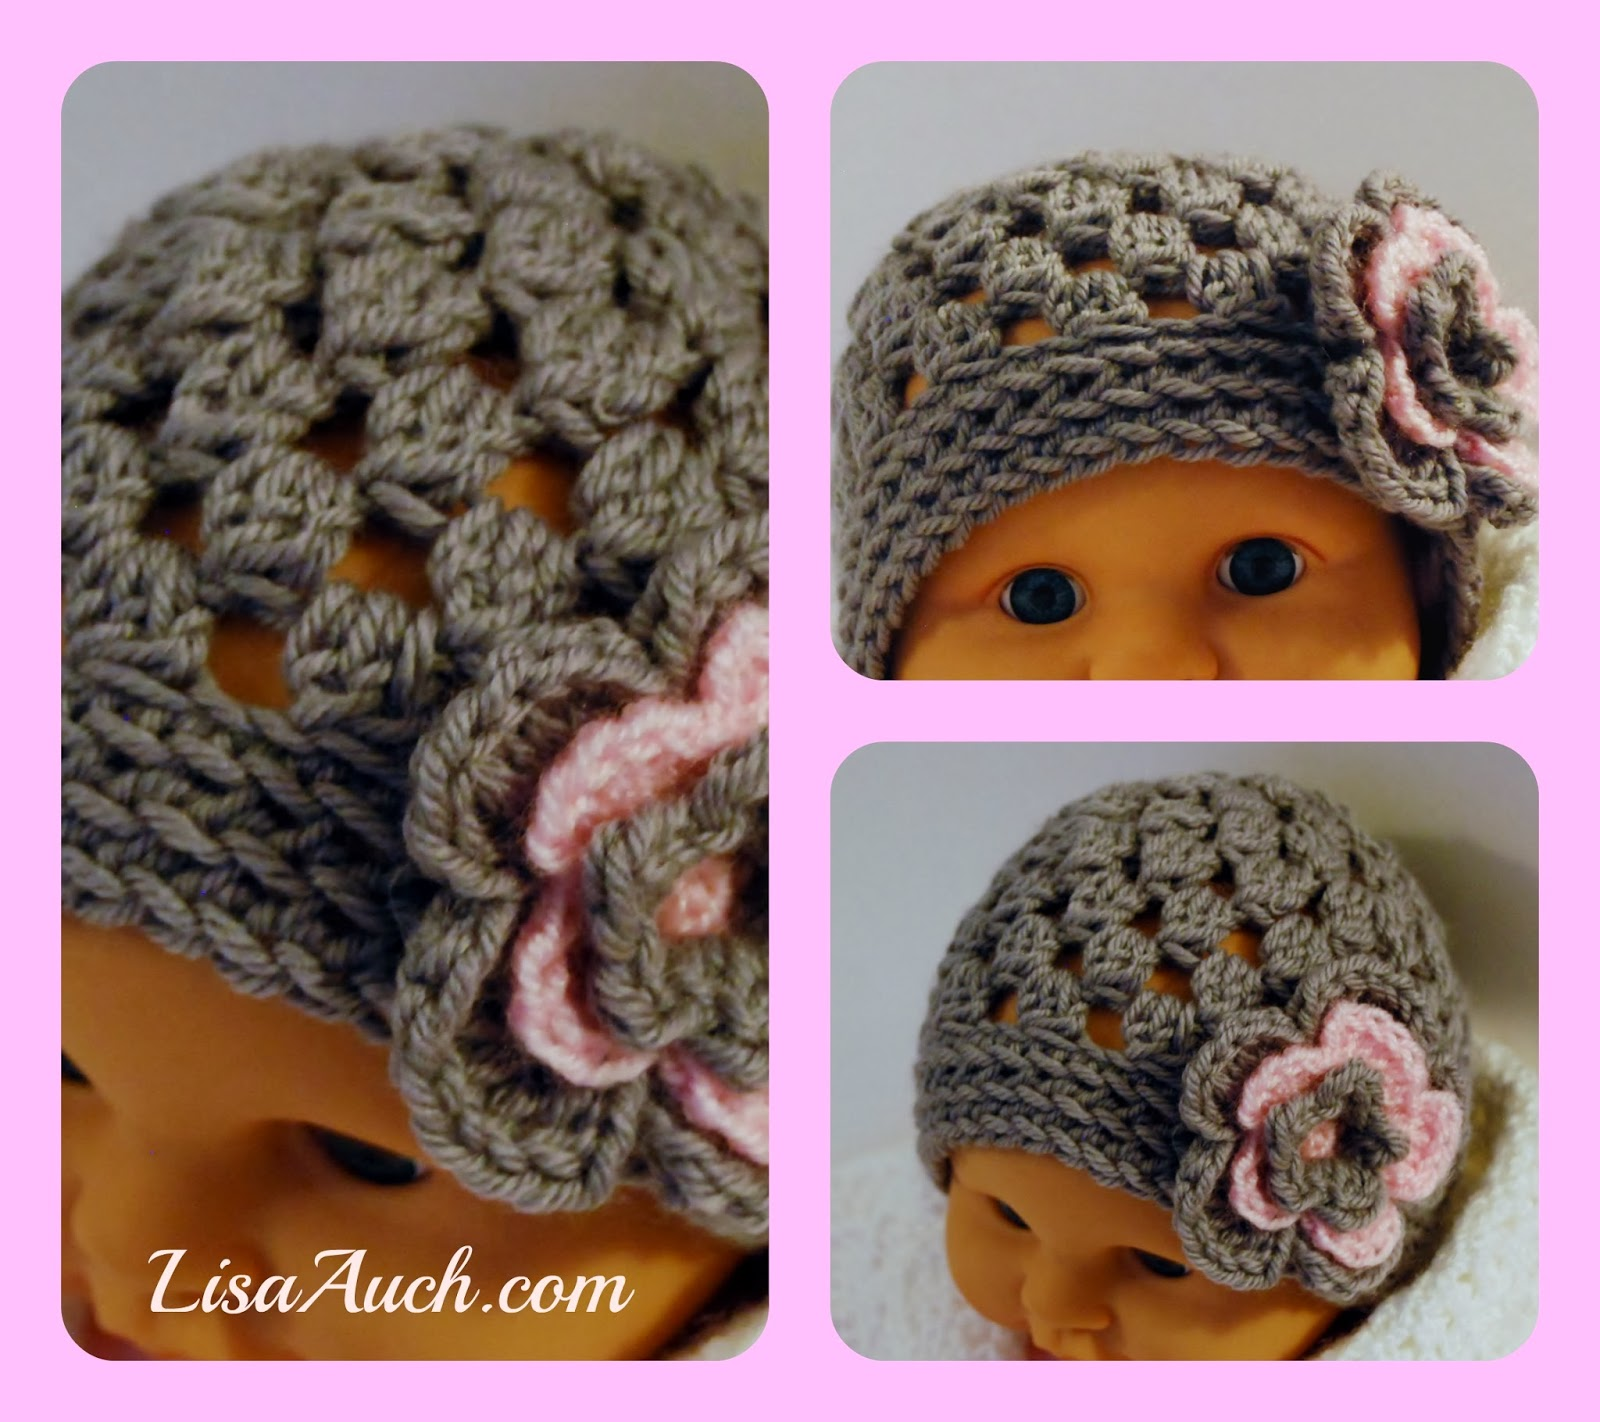 Crochet Baby Beanie Pattern Easy : Free Crochet Patterns and Designs by LisaAuch: FREE ...